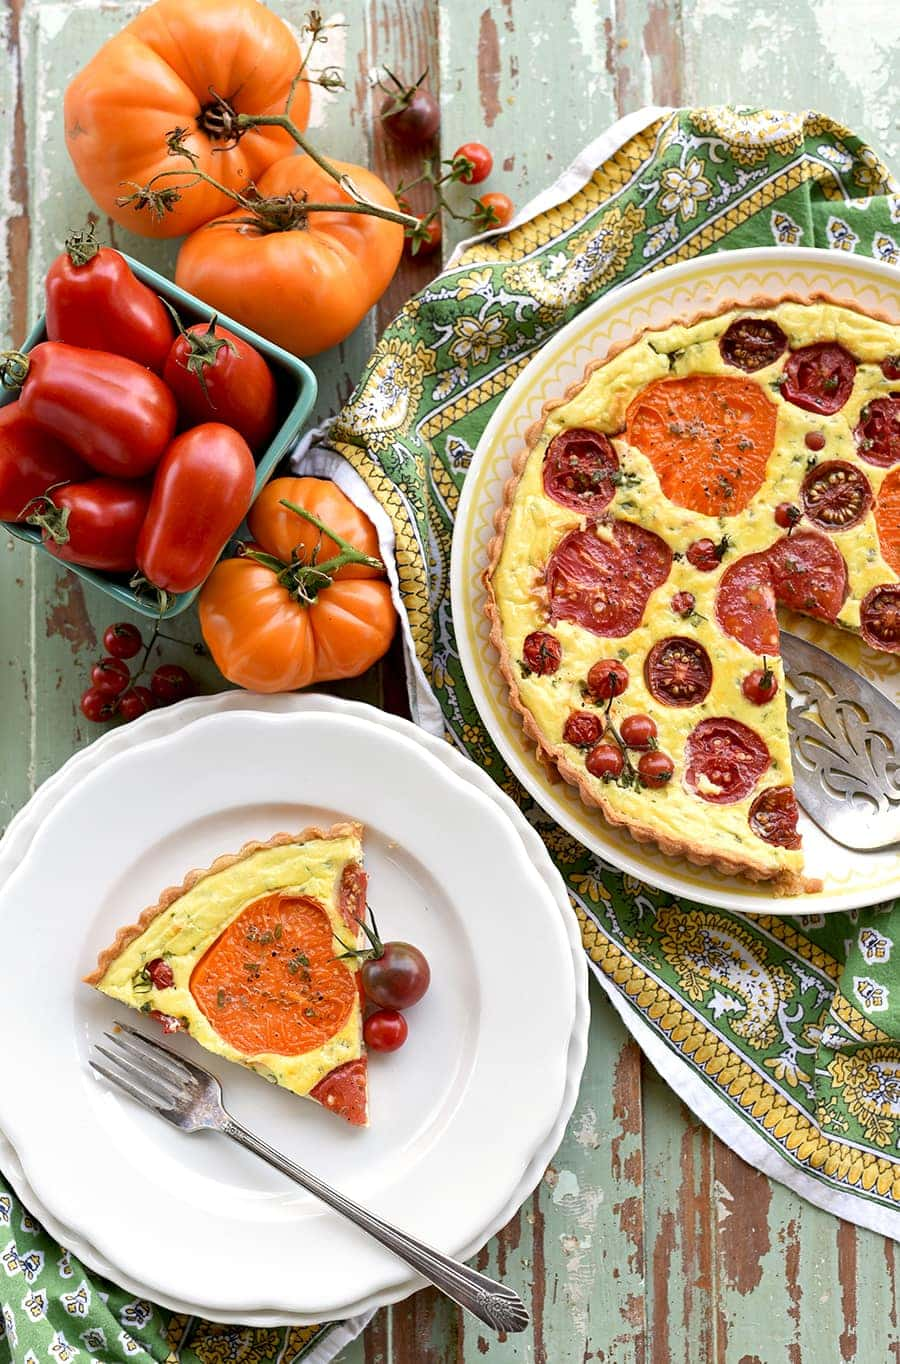 Hairloom Tomato Tart